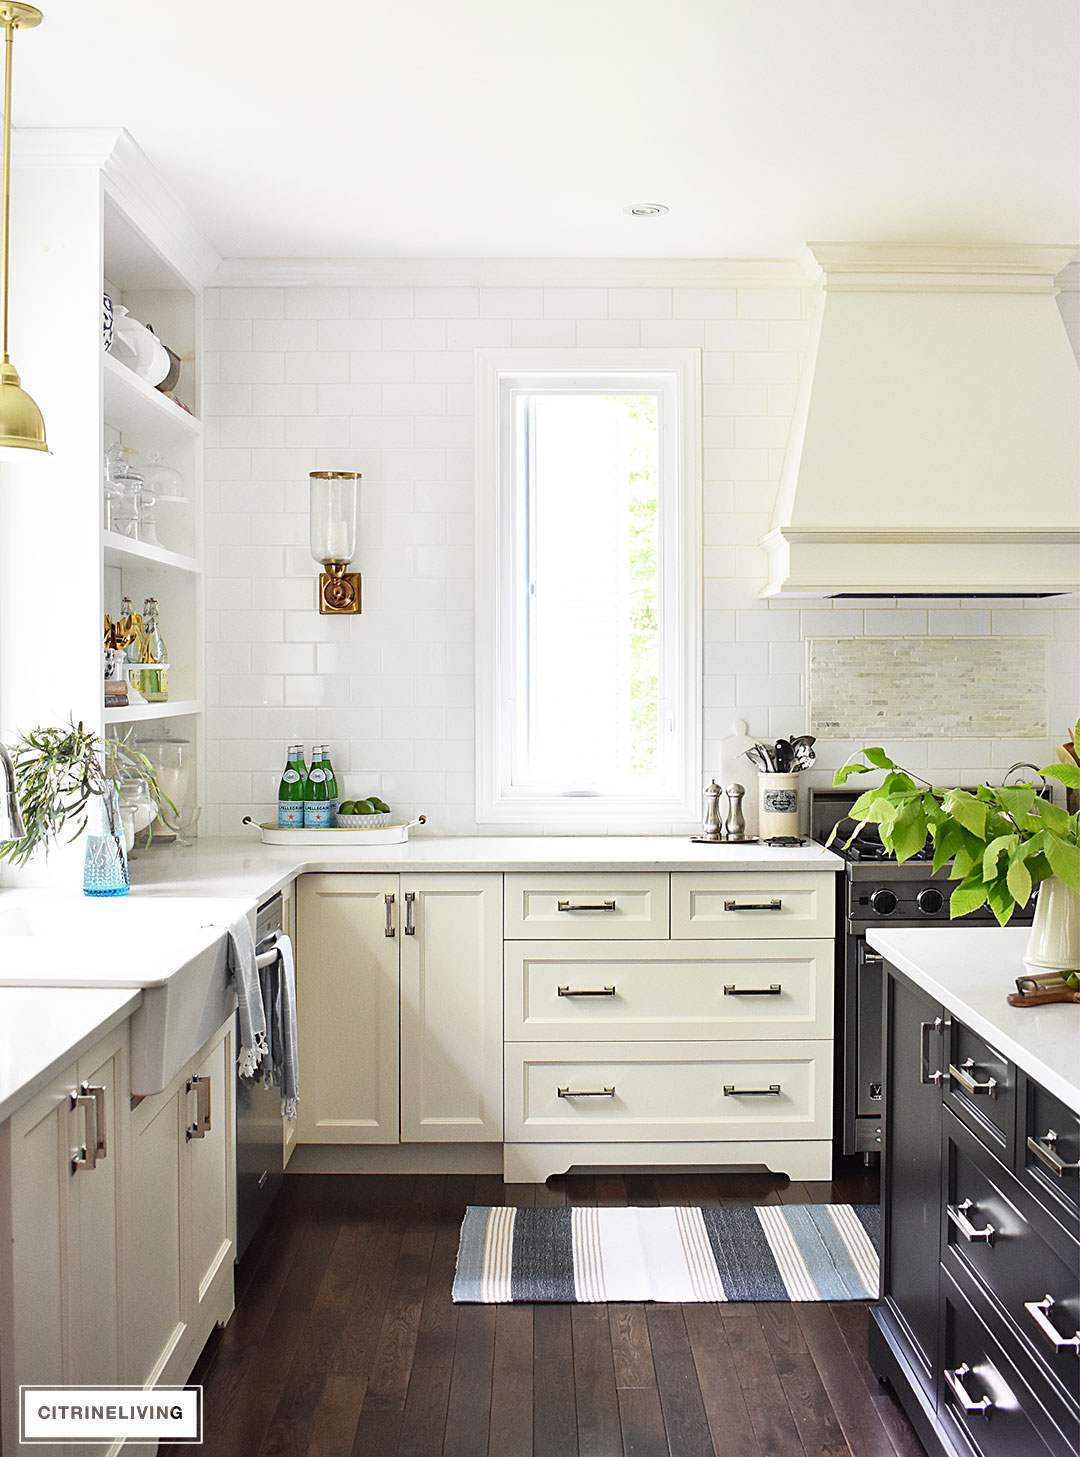 White kitchen with black island decorated for Summer with blue and white ginger jars and dishes accented a blue and white striped rug and turkish towels and fresh cute greenery.